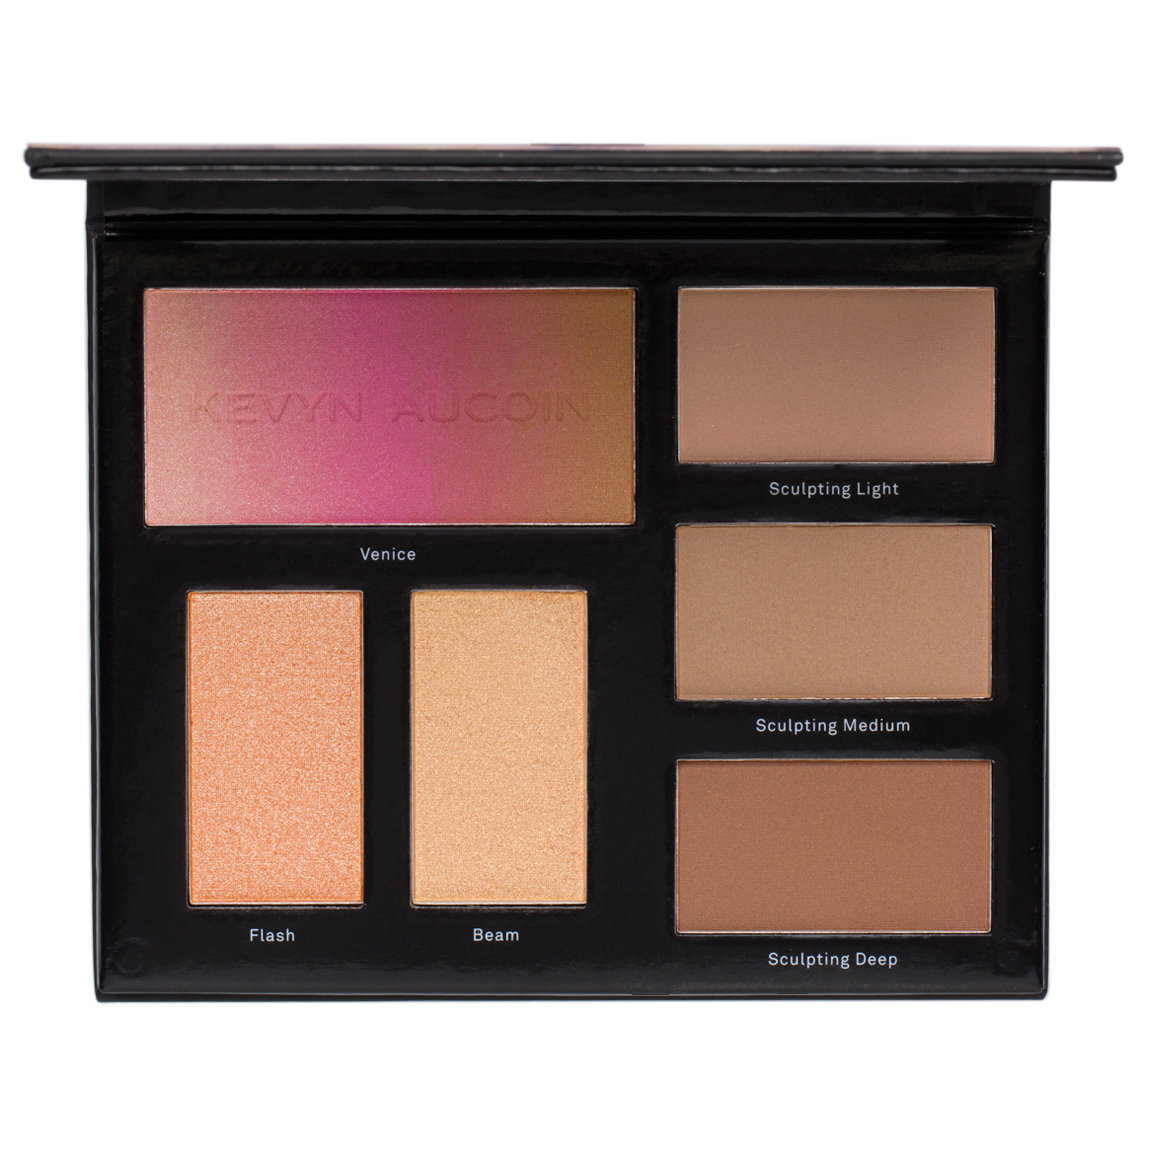 Kevyn Aucoin The Contour Book: The Art of Sculpting & Defining Vol. 3 product swatch.